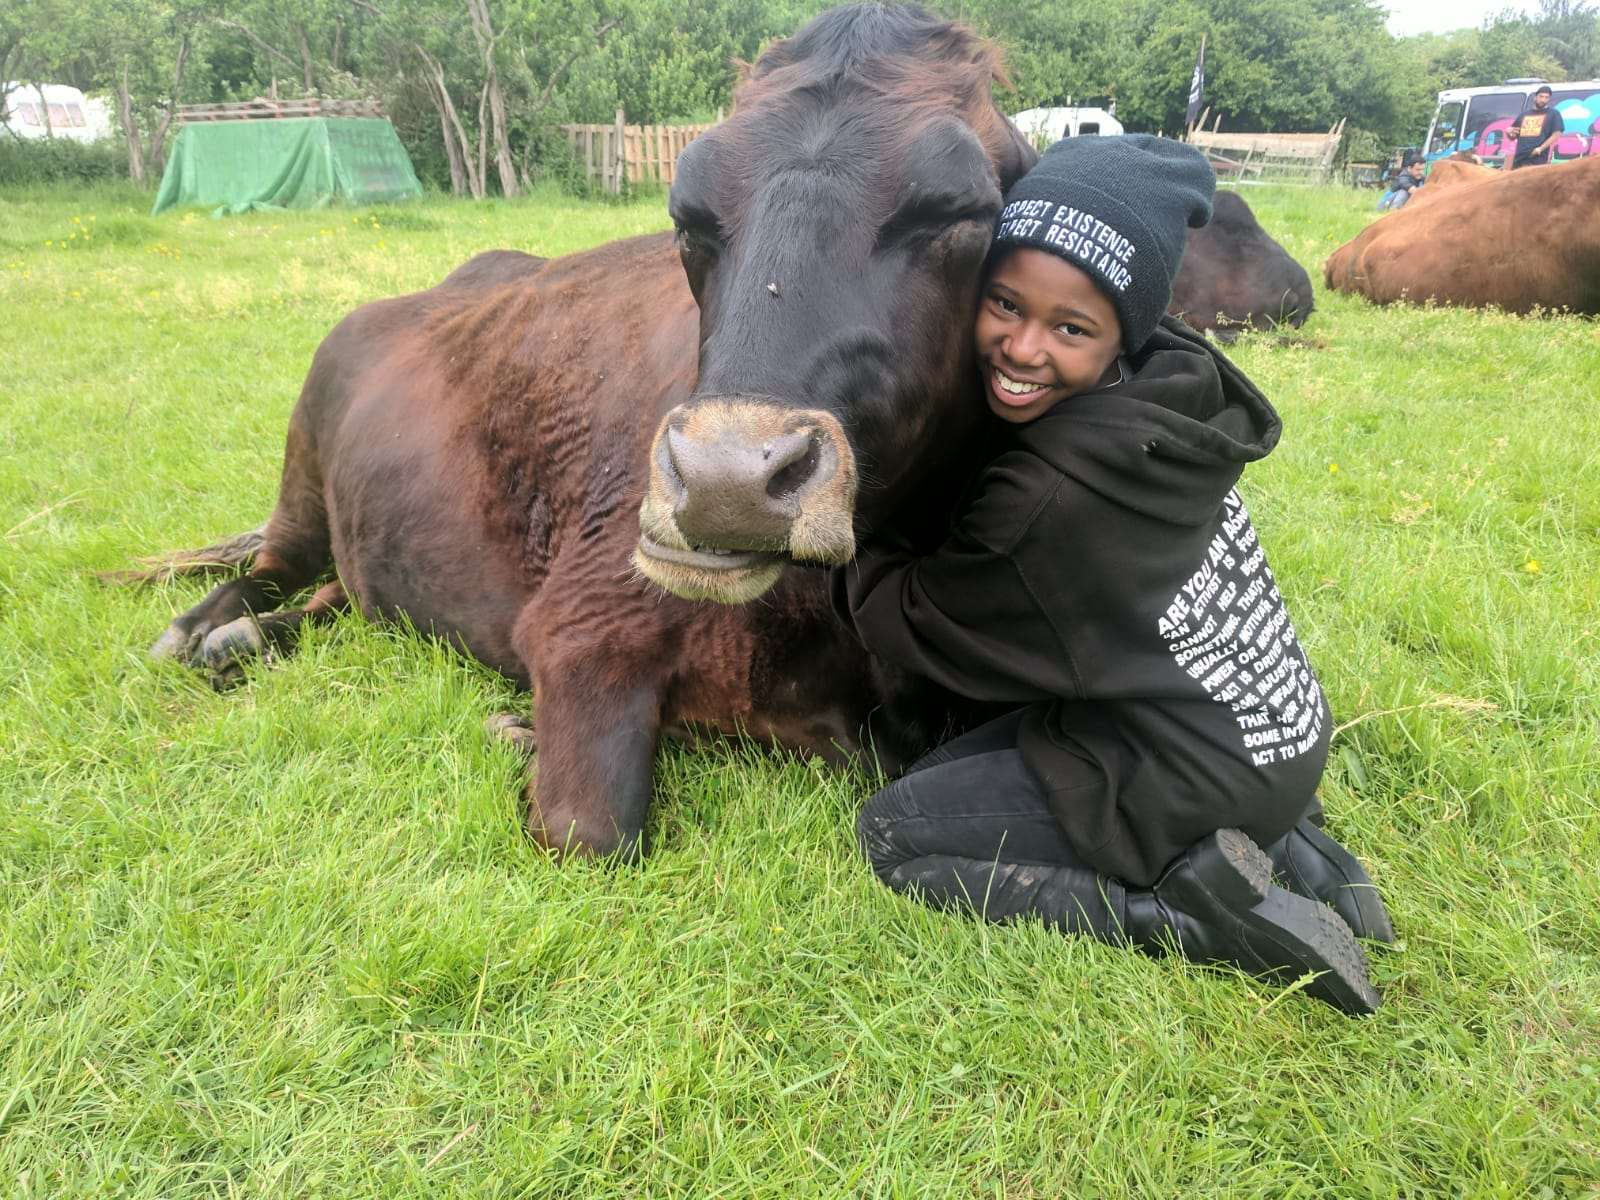 Vegan activist Aiyana Good fellow hugs a cow